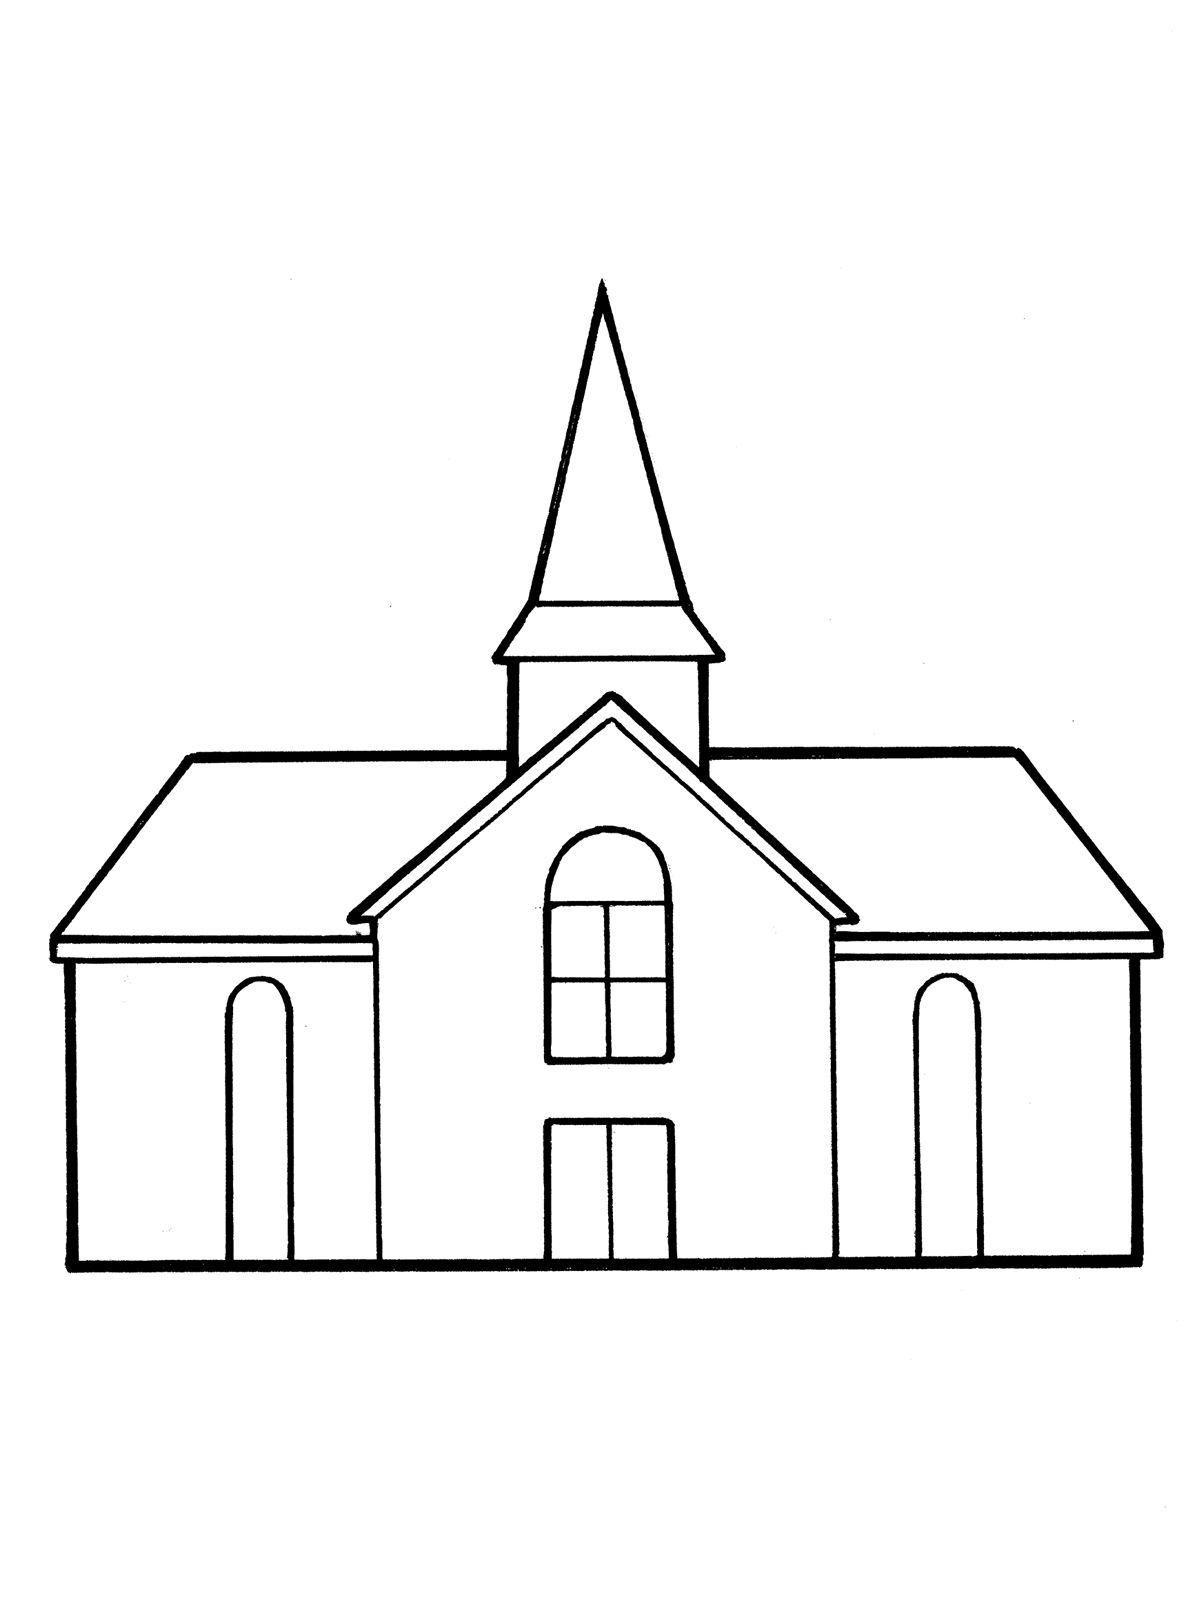 Lds clipart church vector freeuse library Lds church clipart 3 » Clipart Station vector freeuse library